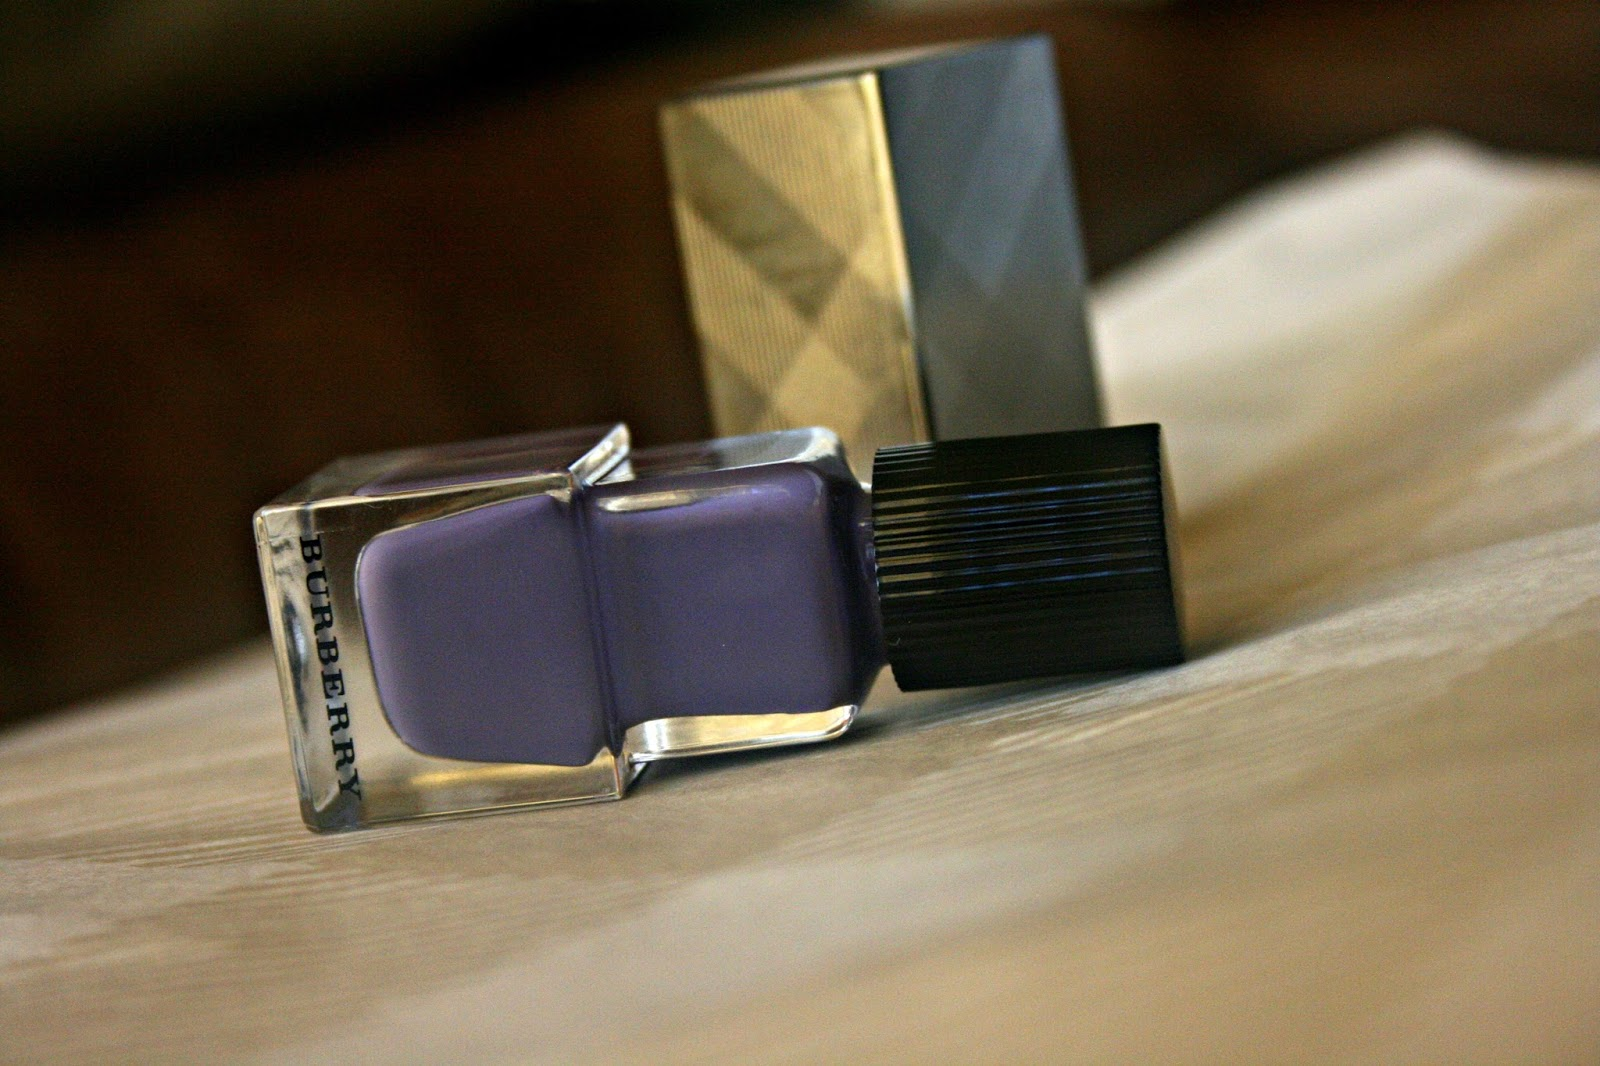 Burberry Beauty Nail Polish in Pale Grape No. 410